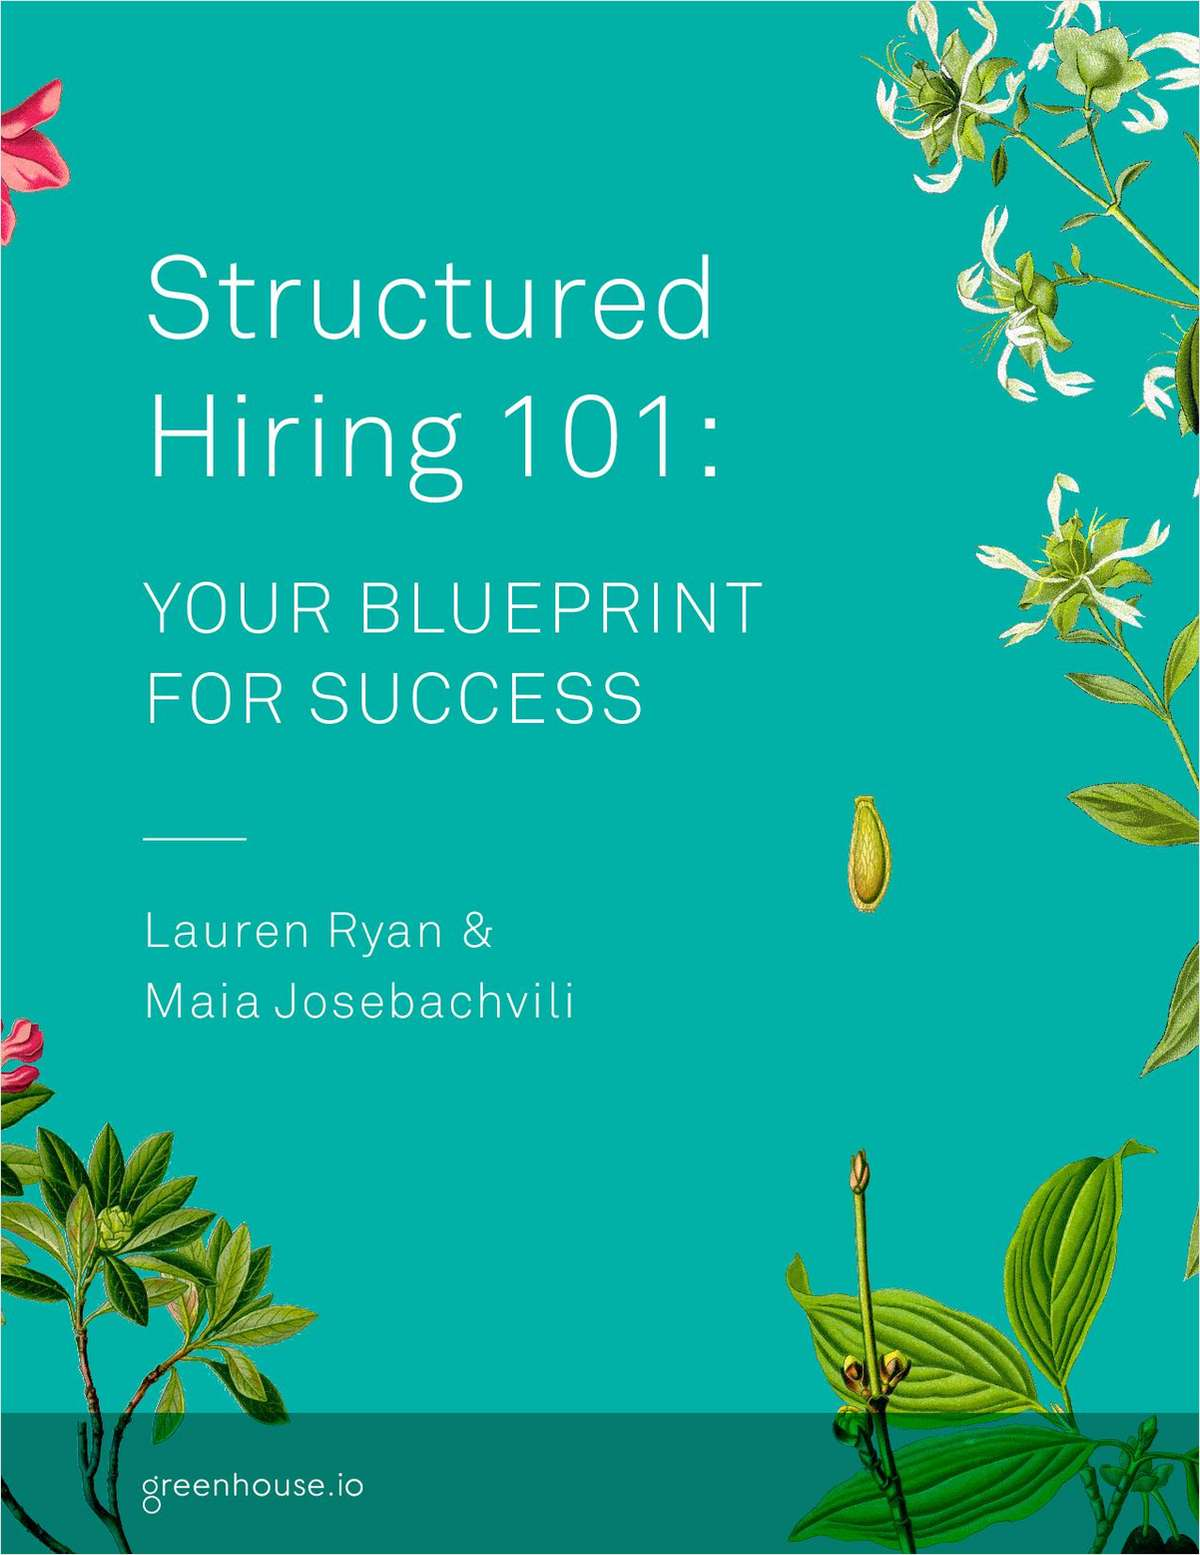 Structured Hiring 101: Your Blueprint for Success